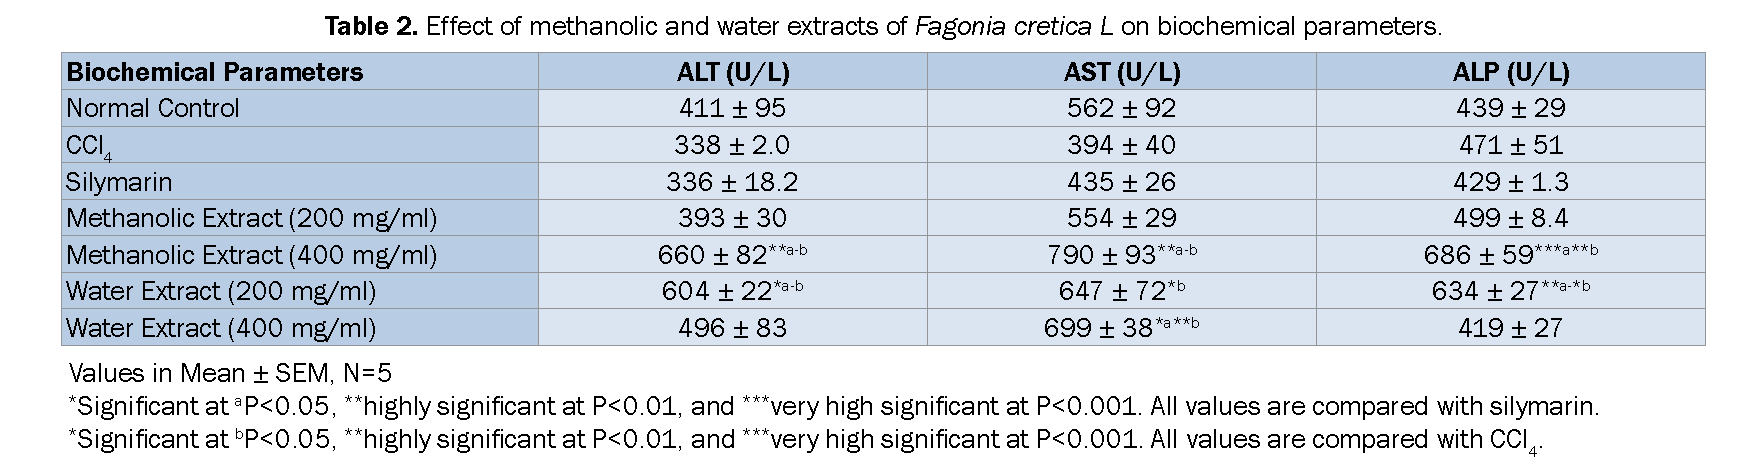 Pharmacognsoy-Phytochemistry-Effect-methanolic-and-water-extracts-Fagonia-cretica-L